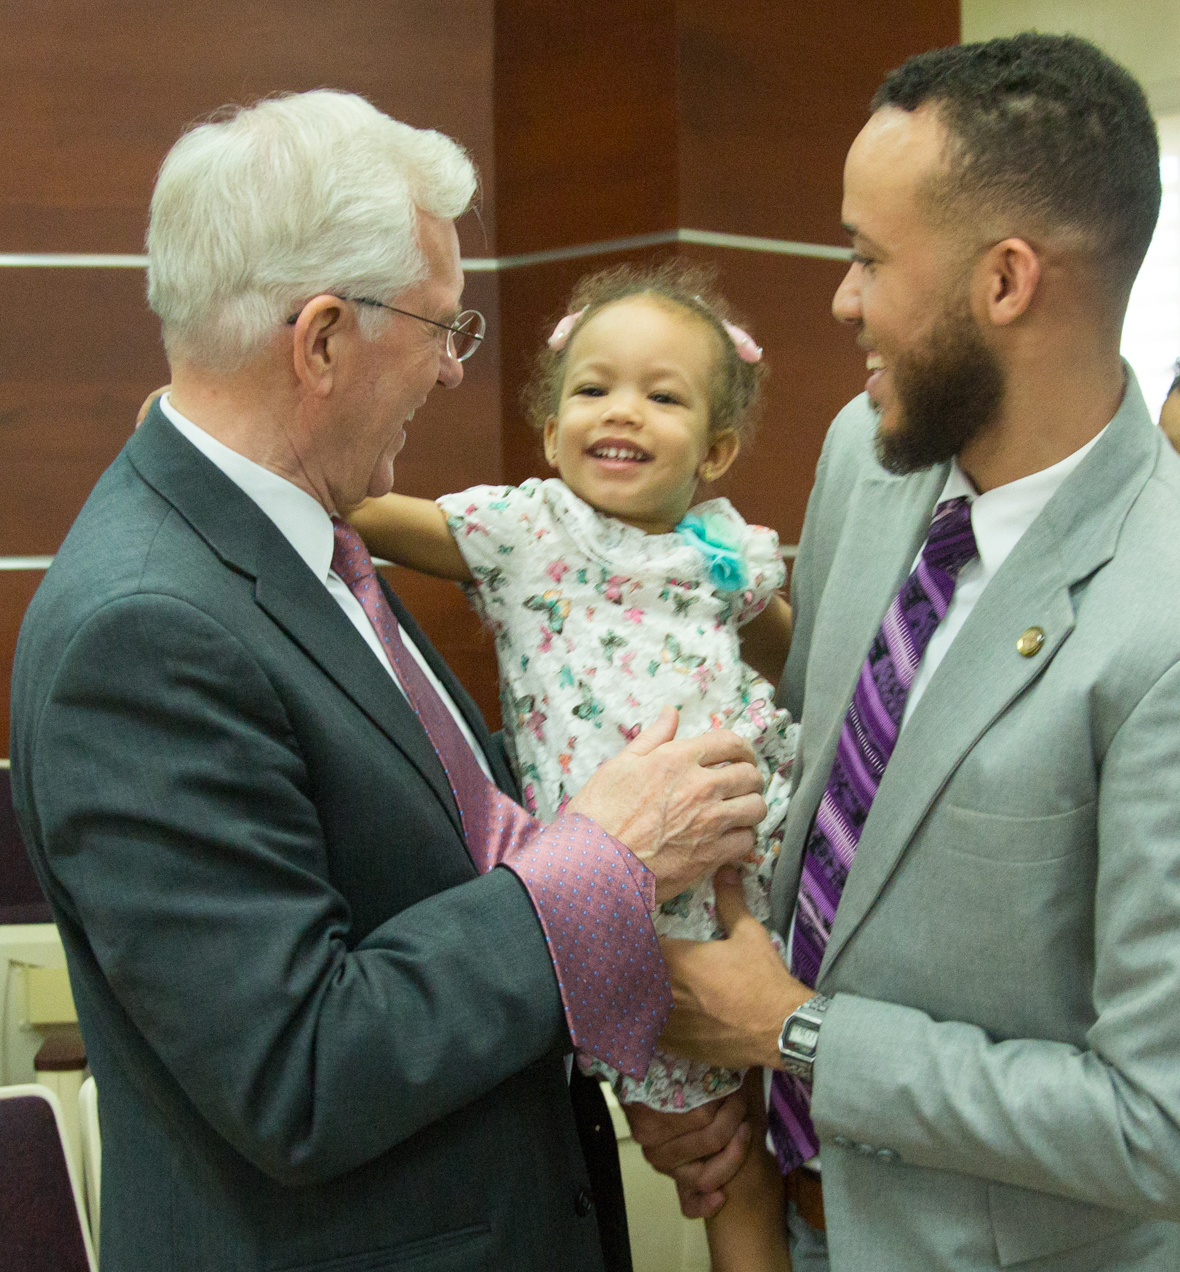 Elder D. Todd Christofferson makes a new friend at a conference of the Santo Domingo Dominican Republic Geronimo Stake on Nov. 11, 2018.